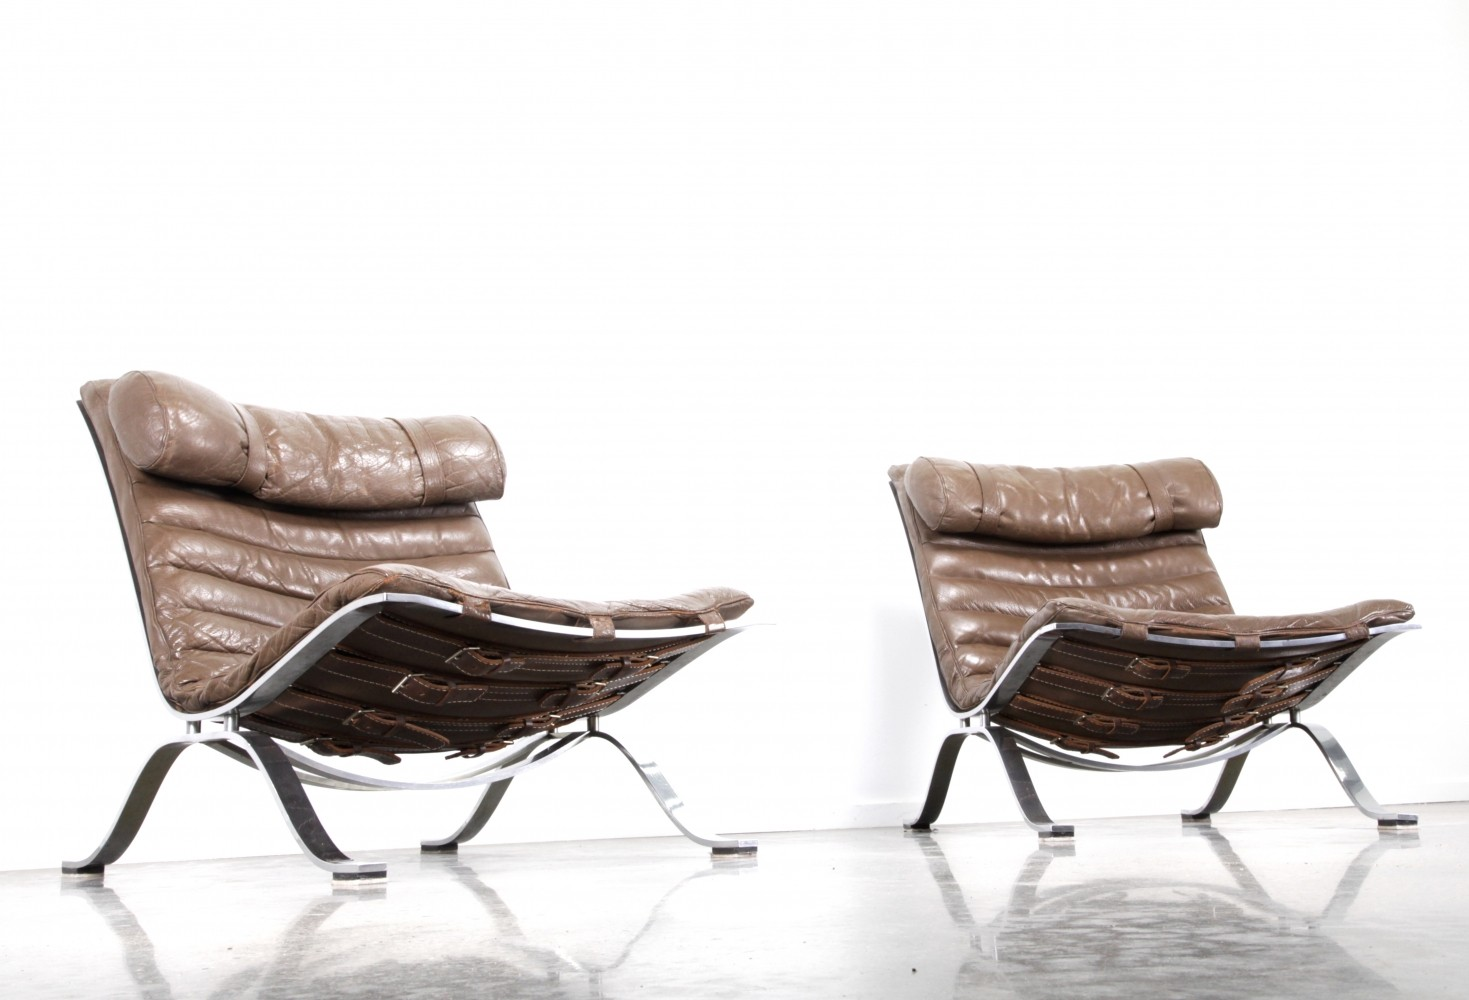 Set of Ari chairs by Arne Norell in brown leather